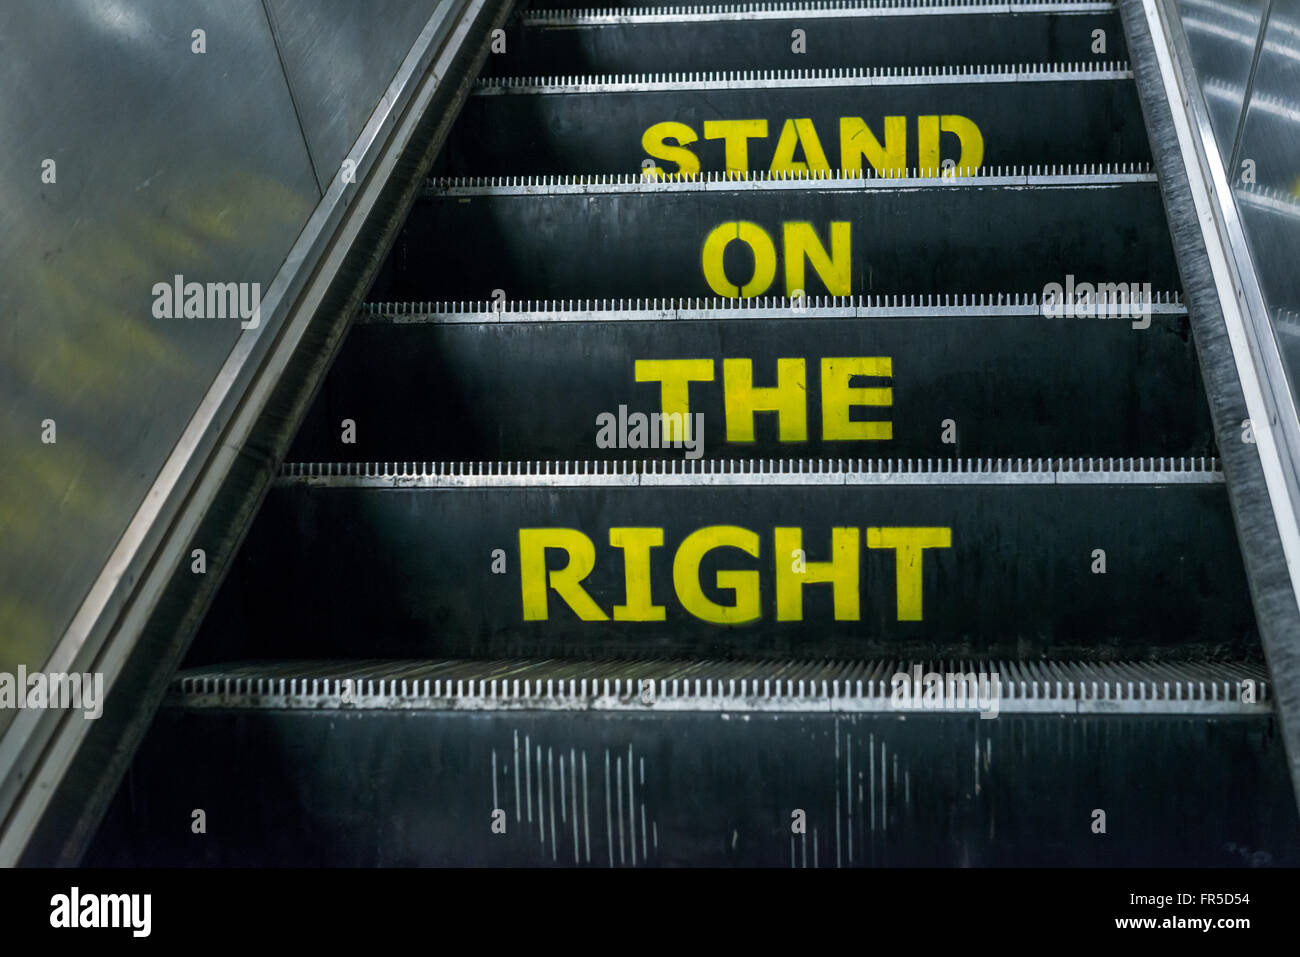 London, United Kingdom - March 20, 2016: Stand on the right notice on an escalator in London Underground, Euston - Stock Image